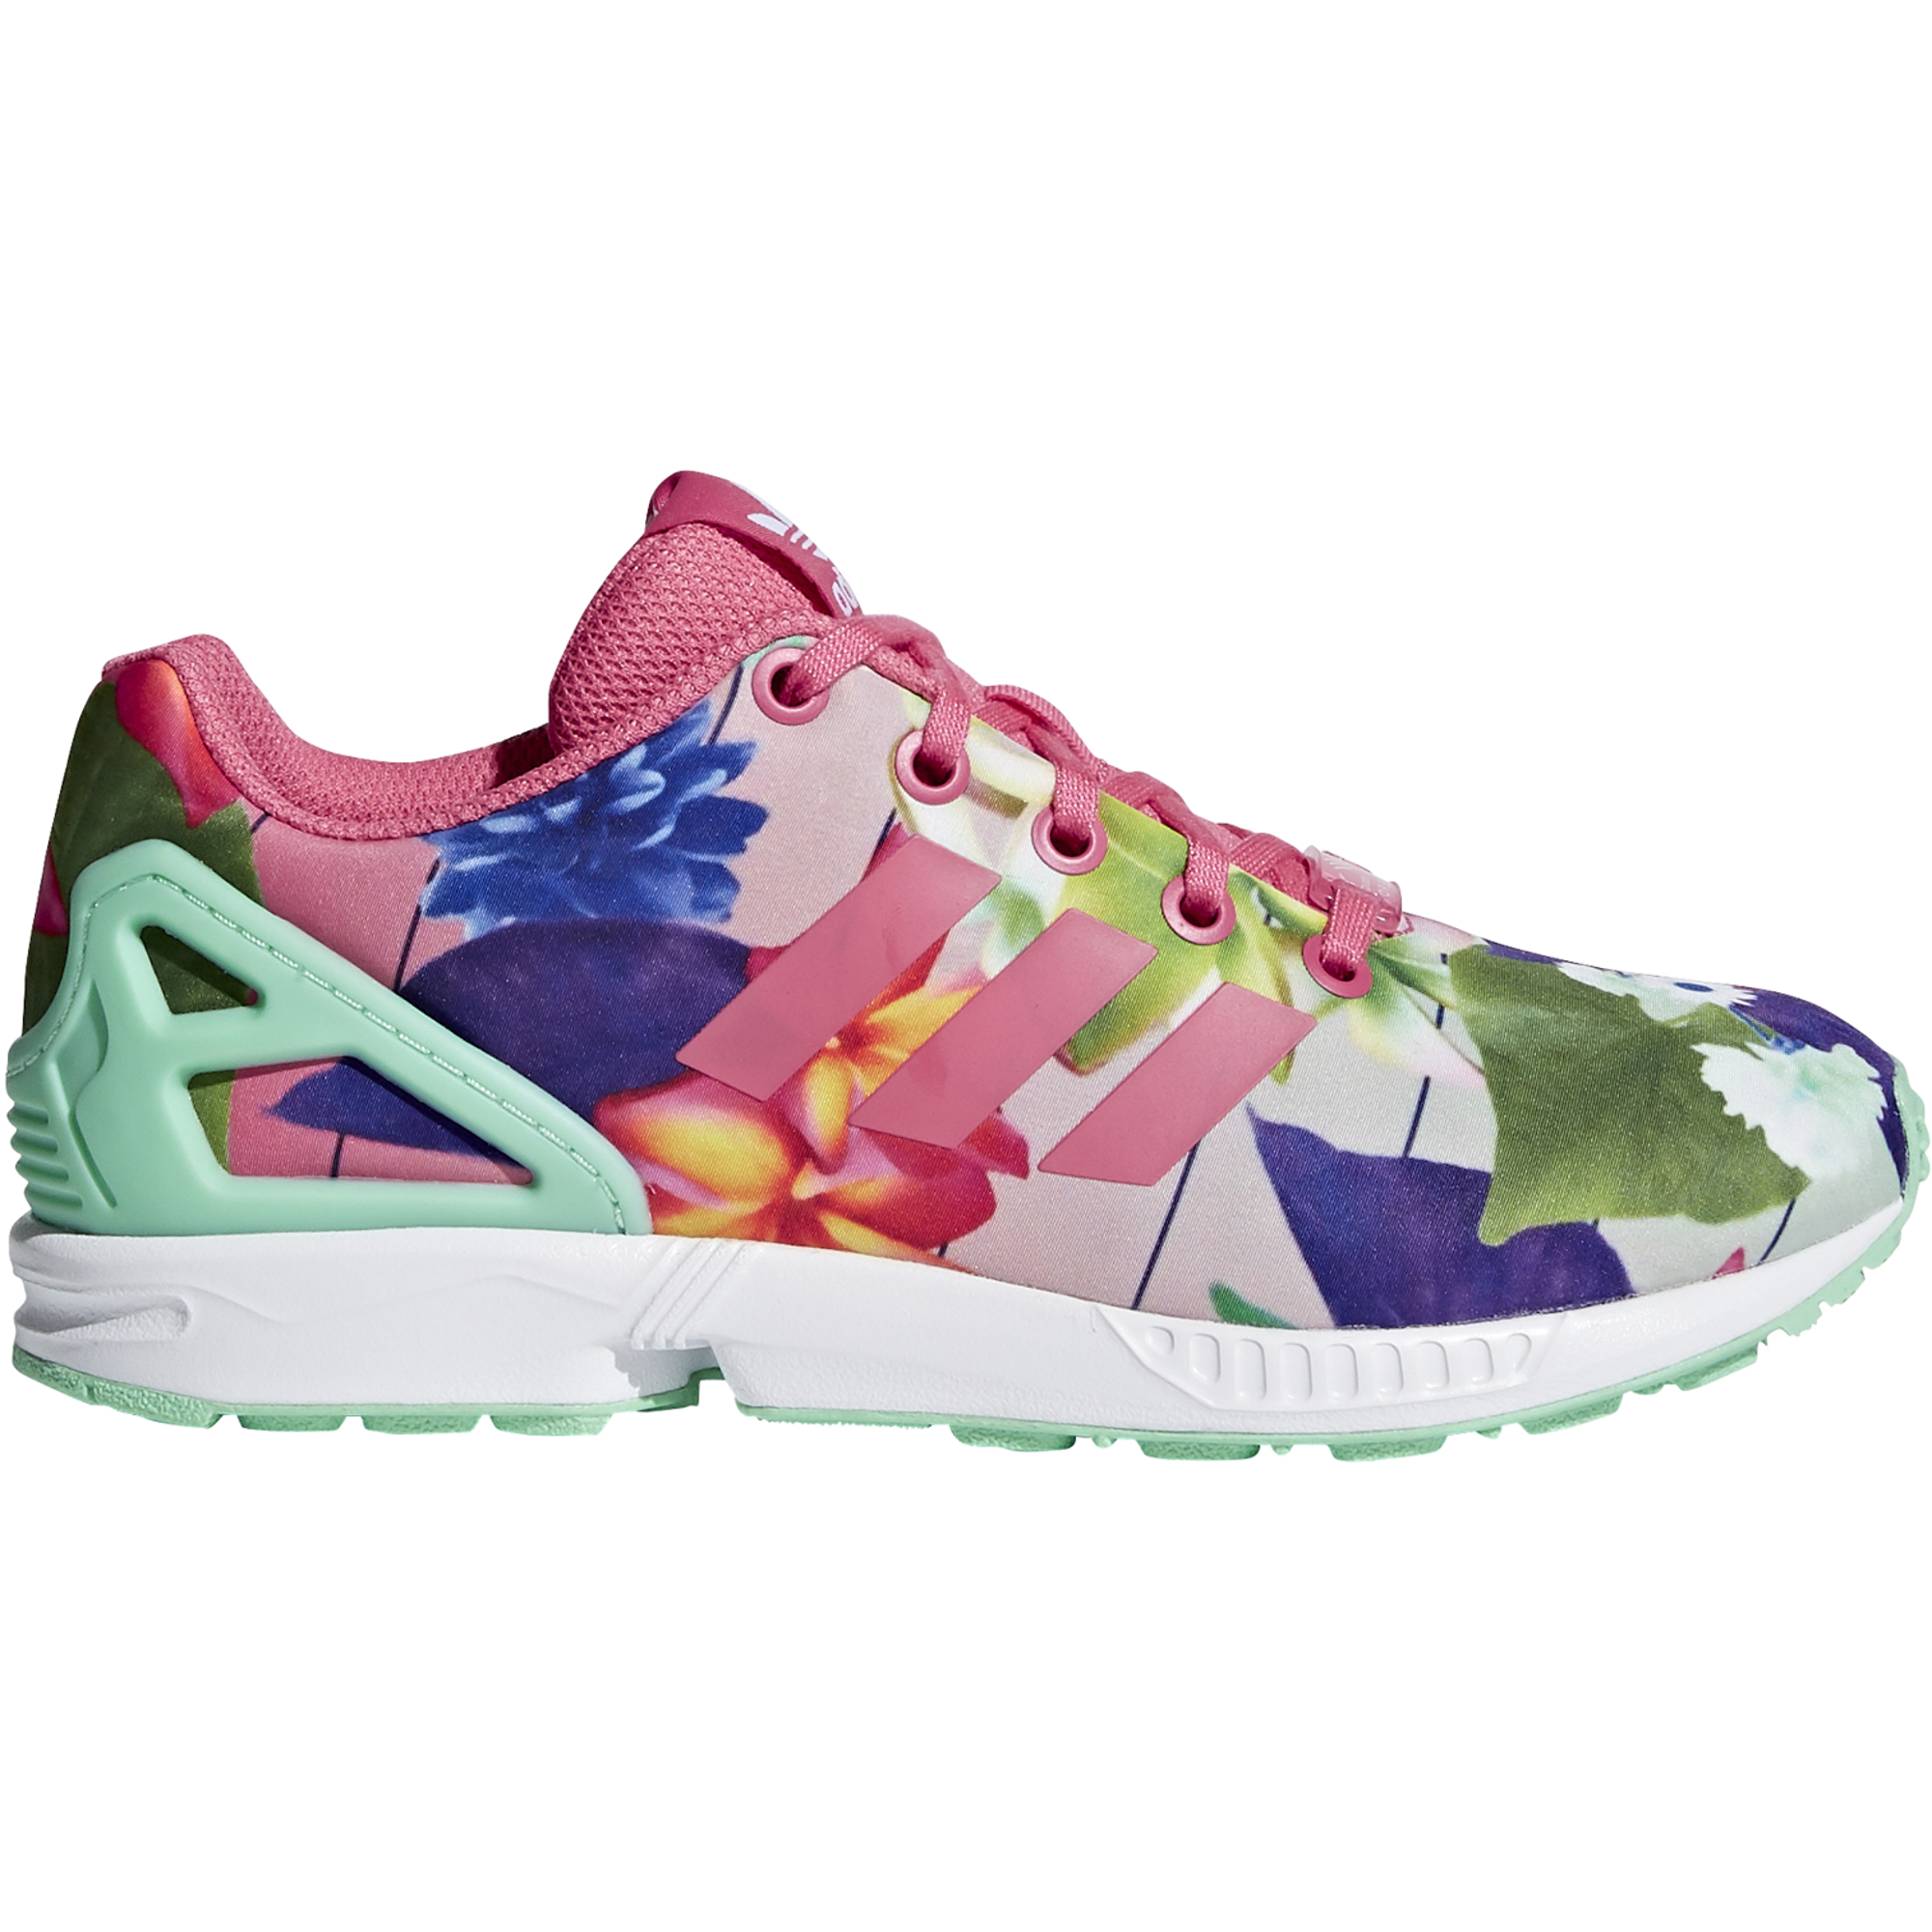 adidas originals cm8135 zx - flux - j cm8135